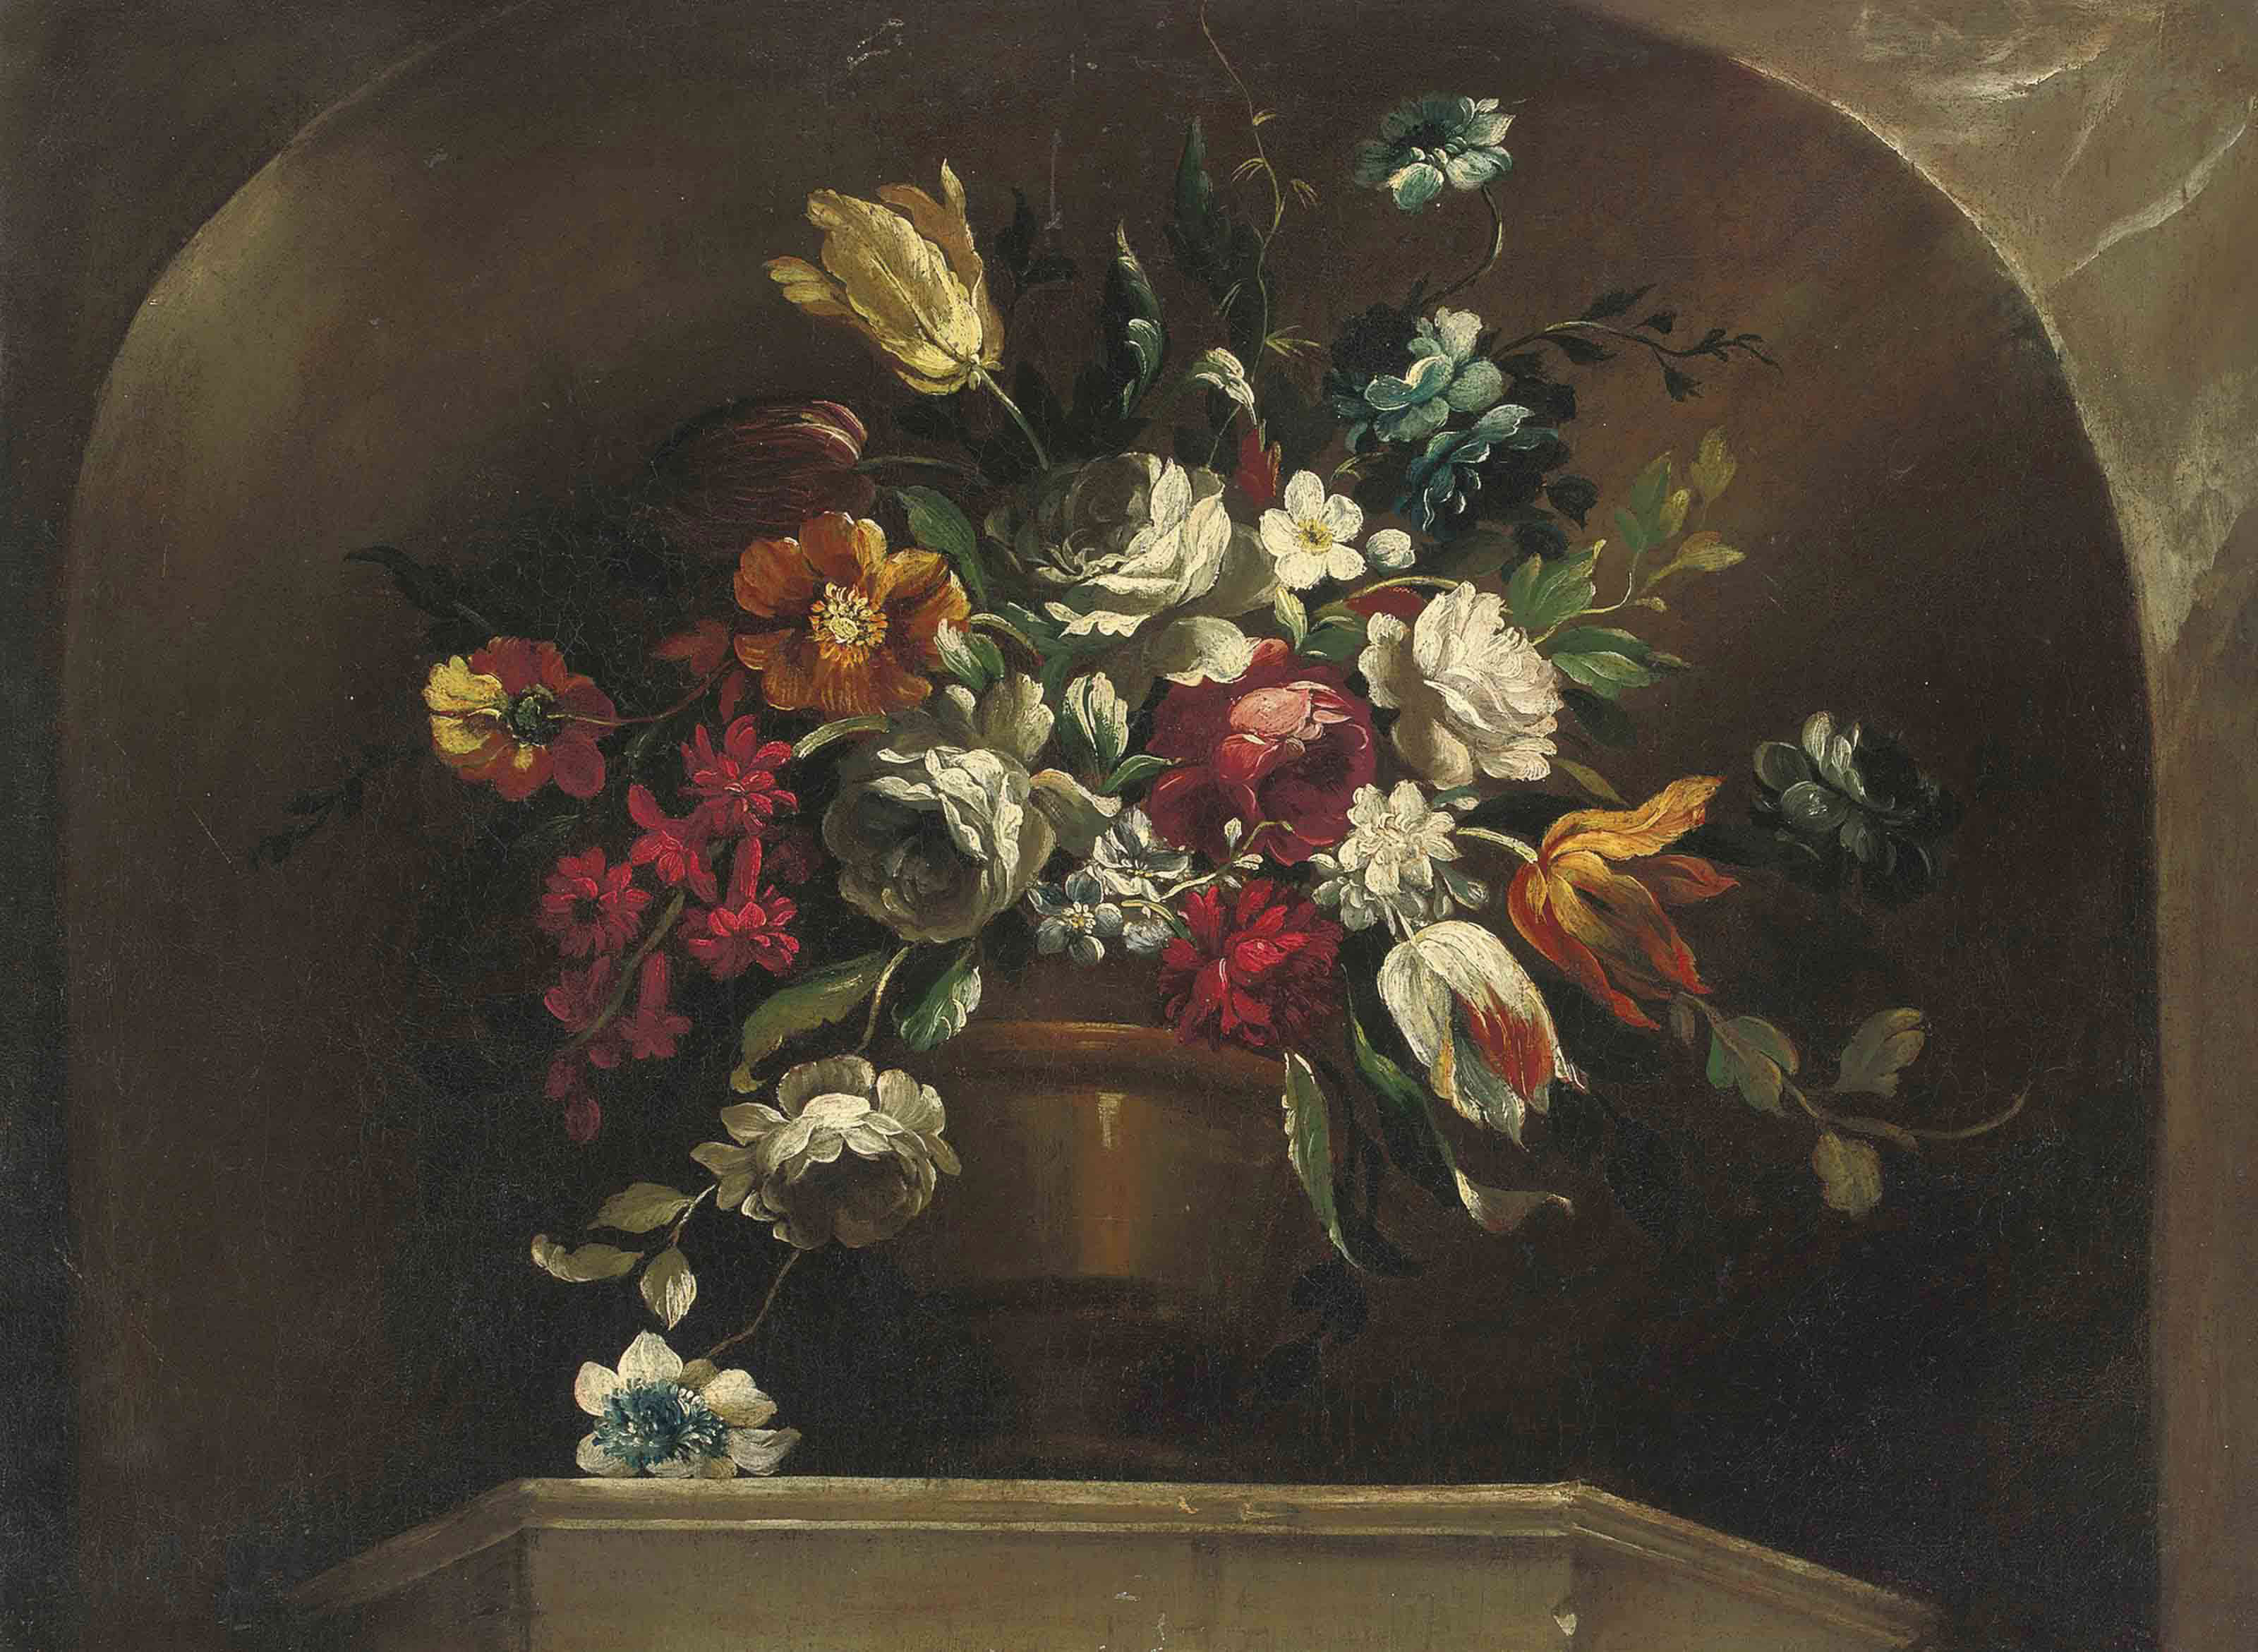 Roses, tulips and other flowers in an urn on a ledge, in a stone niche